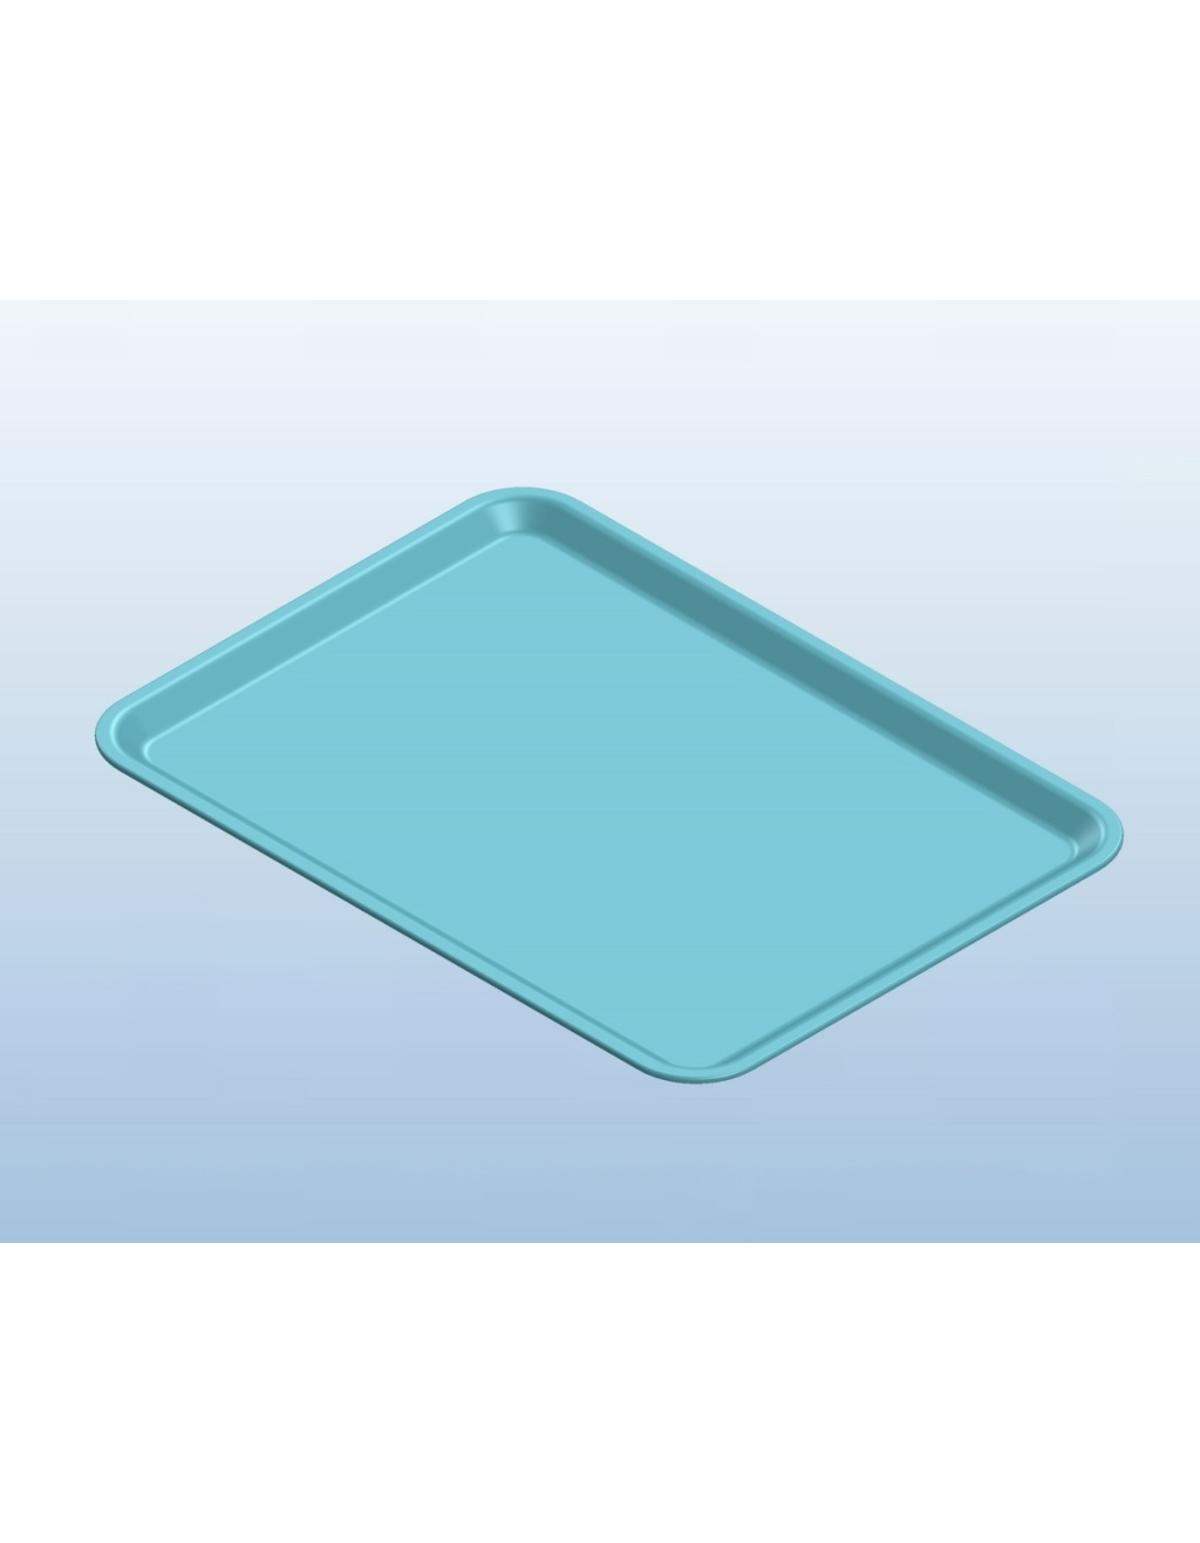 Here It Is Blue Dietary Tray Low Price | Kitchen Aids » Daily Aids ...